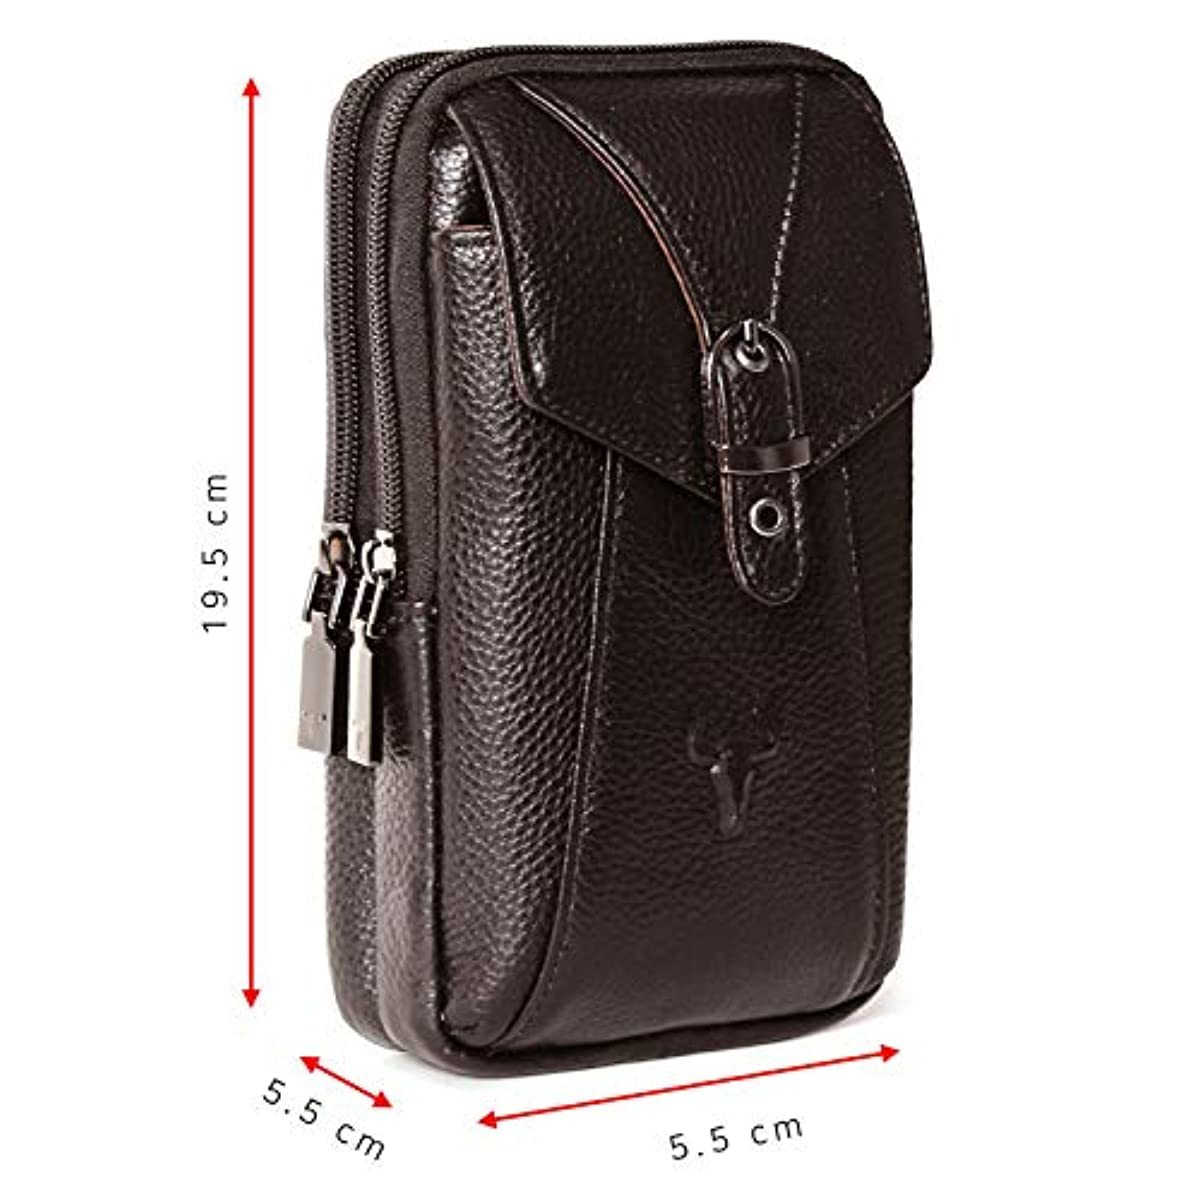 Phone purse iPhone 11 Pro Max Leather Cell phone Holster Case Belt Loop Pouch Travel Messenger Bag Dark Brown 2185 - ENCACC